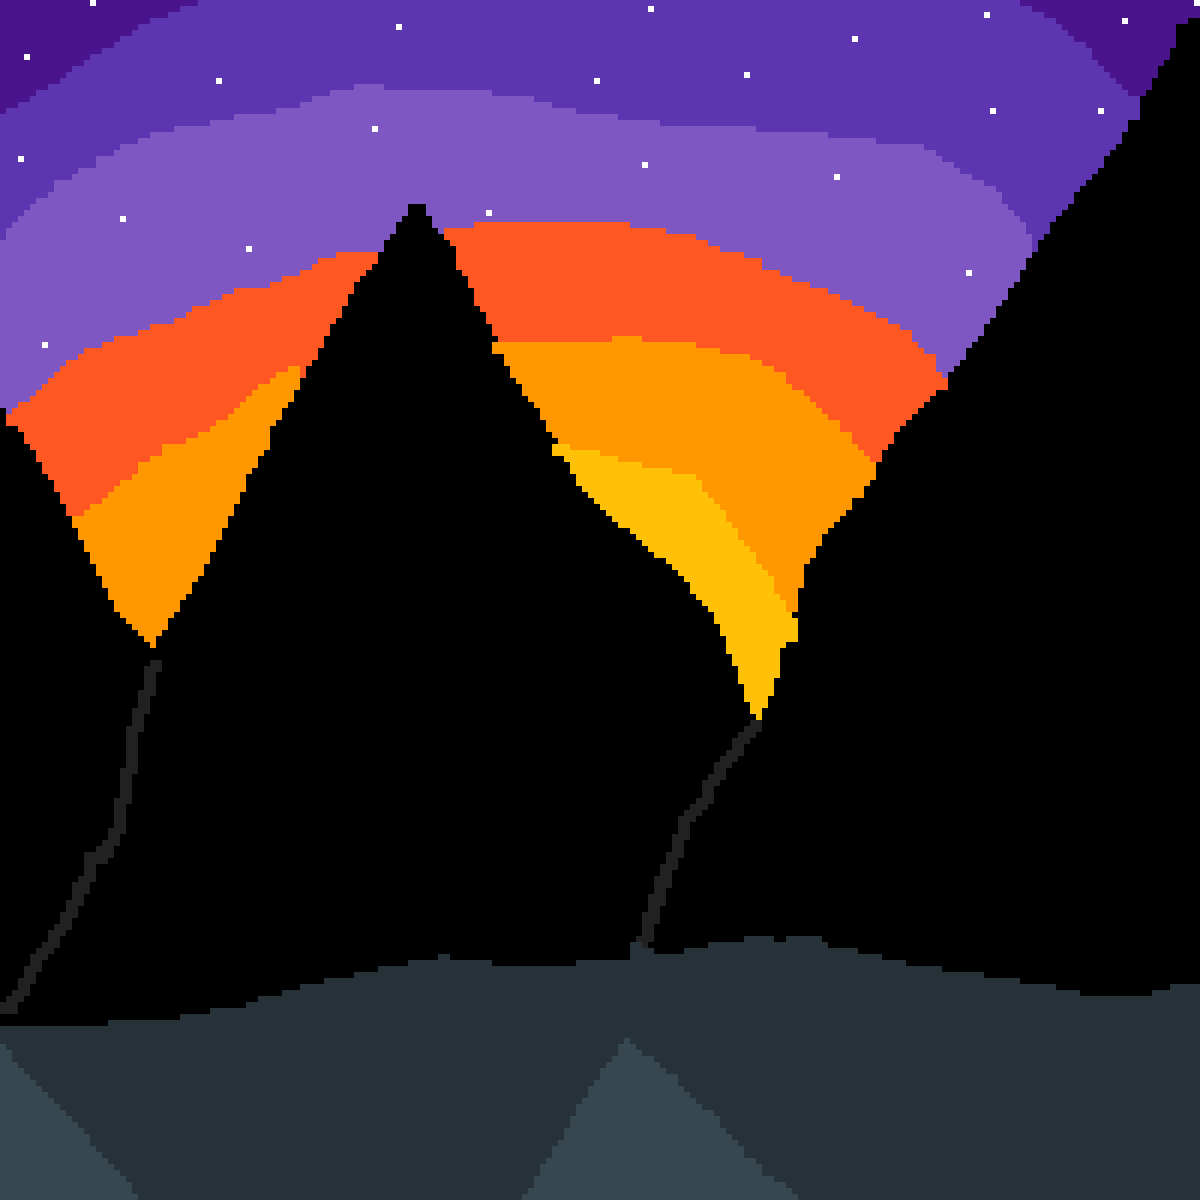 Silhouettes of a Mountain with snow  by Historypanda